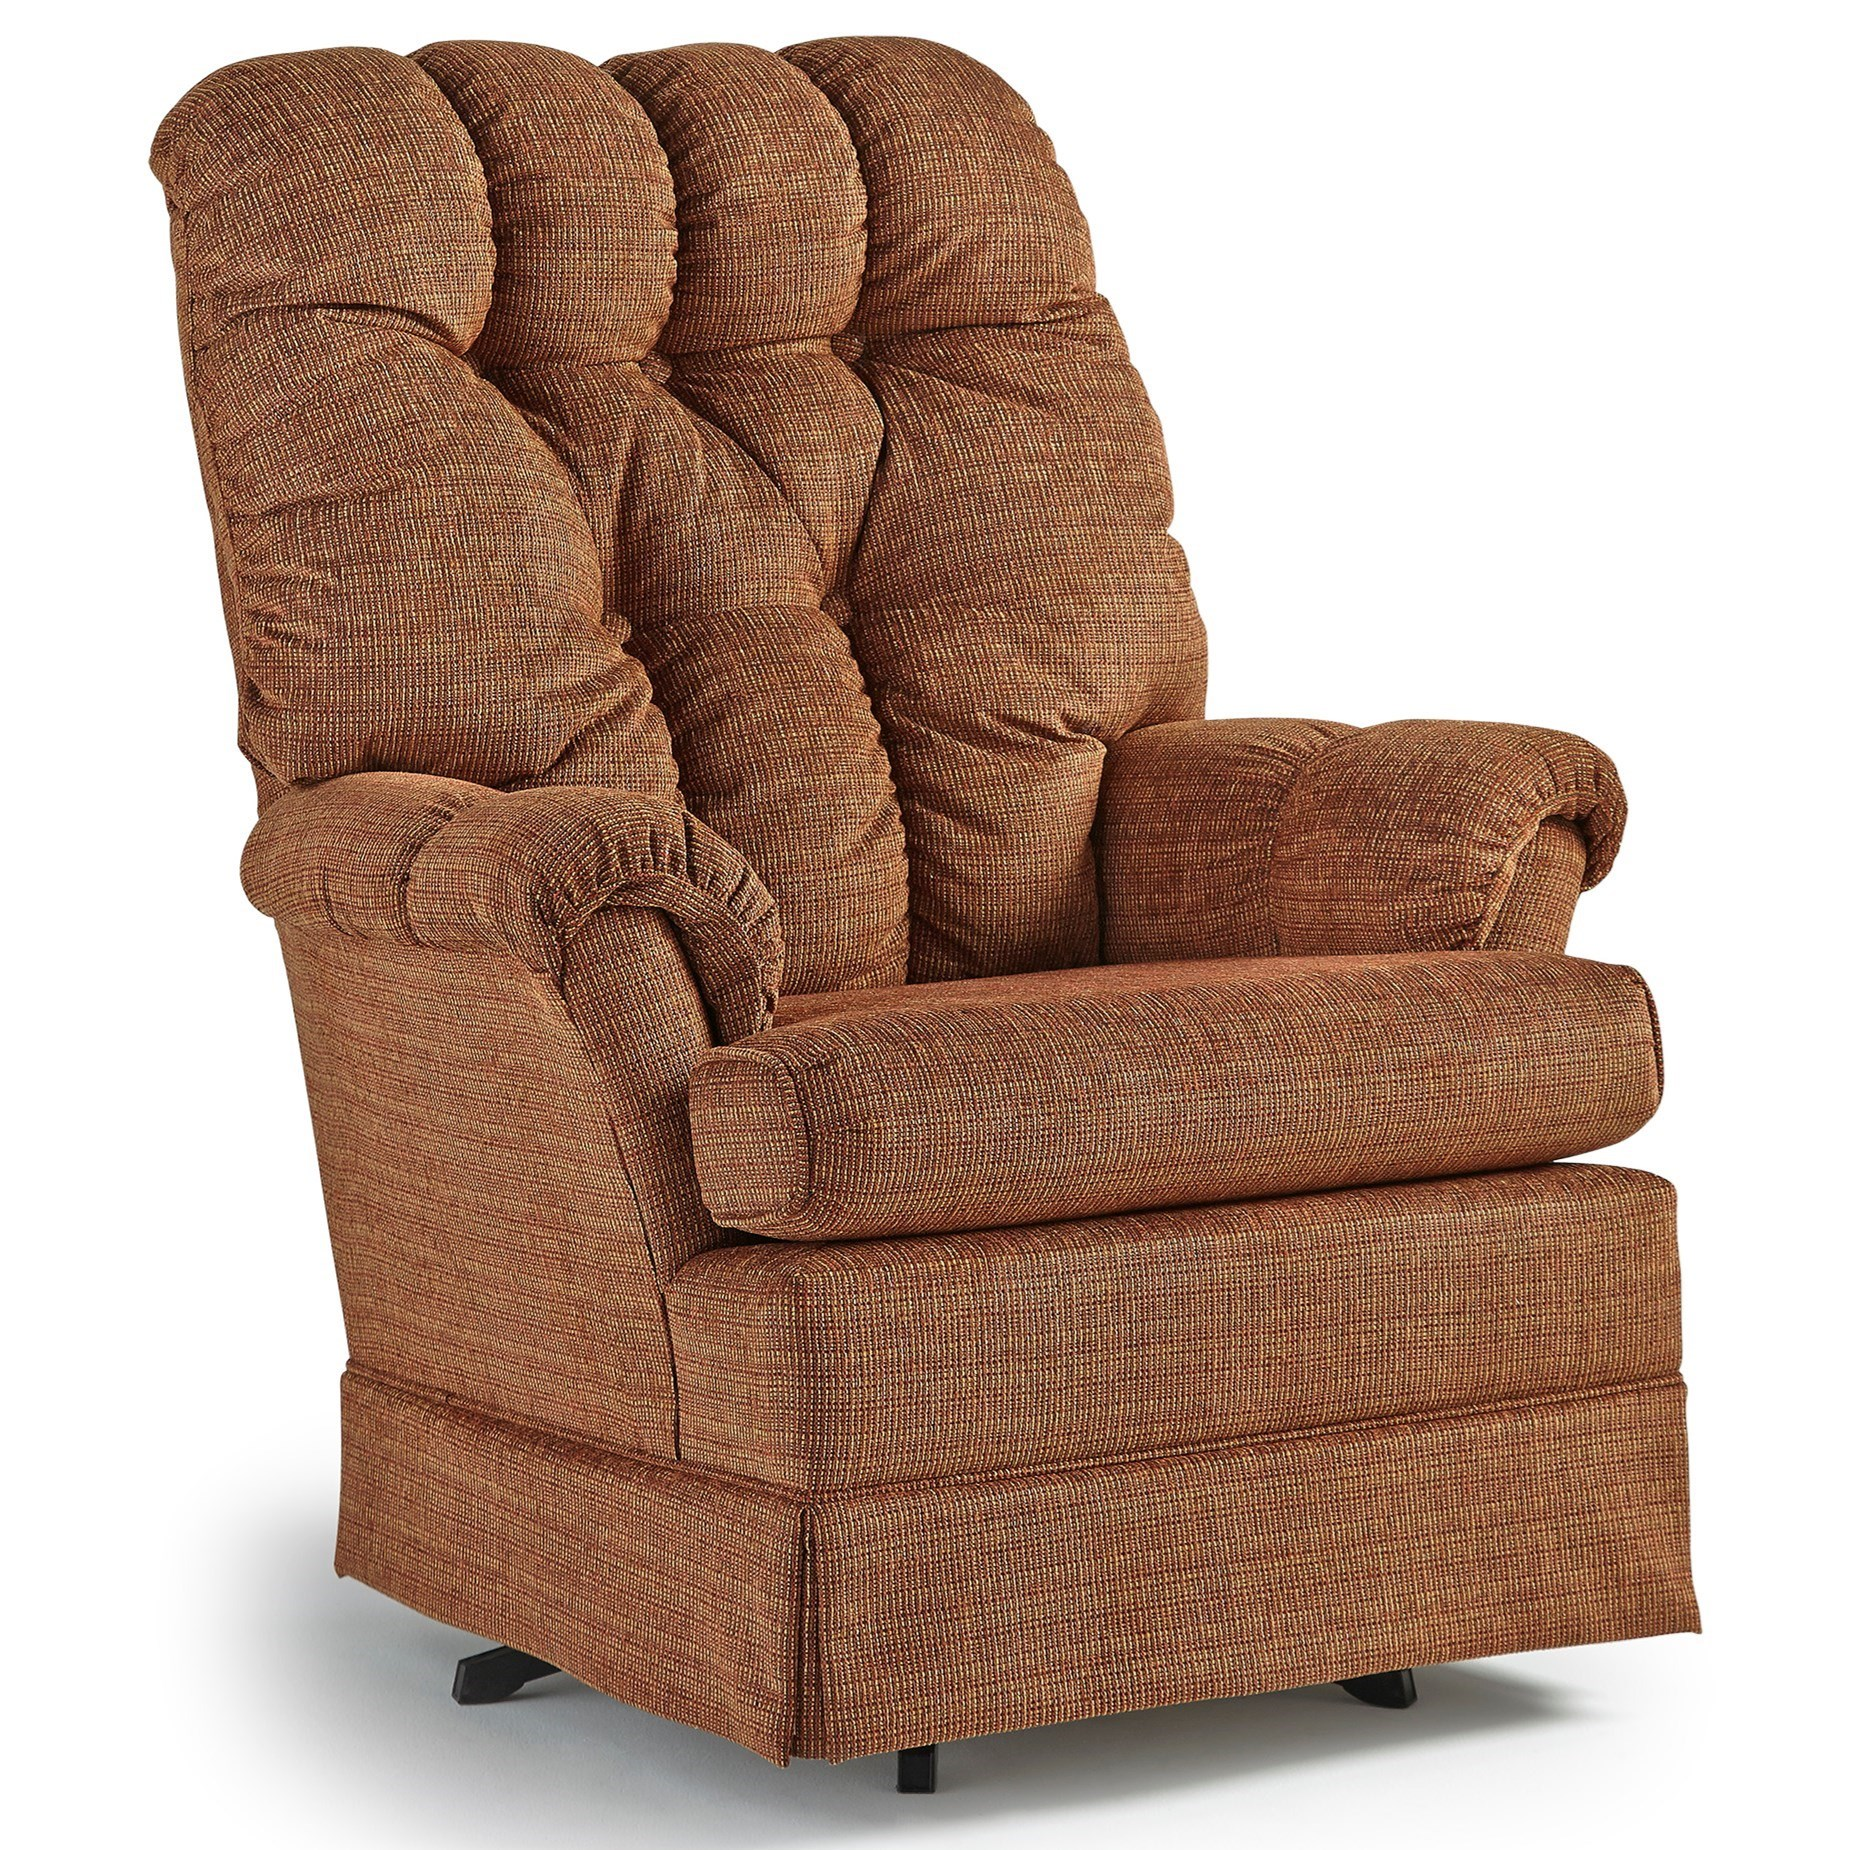 Swivel Rocker Chair